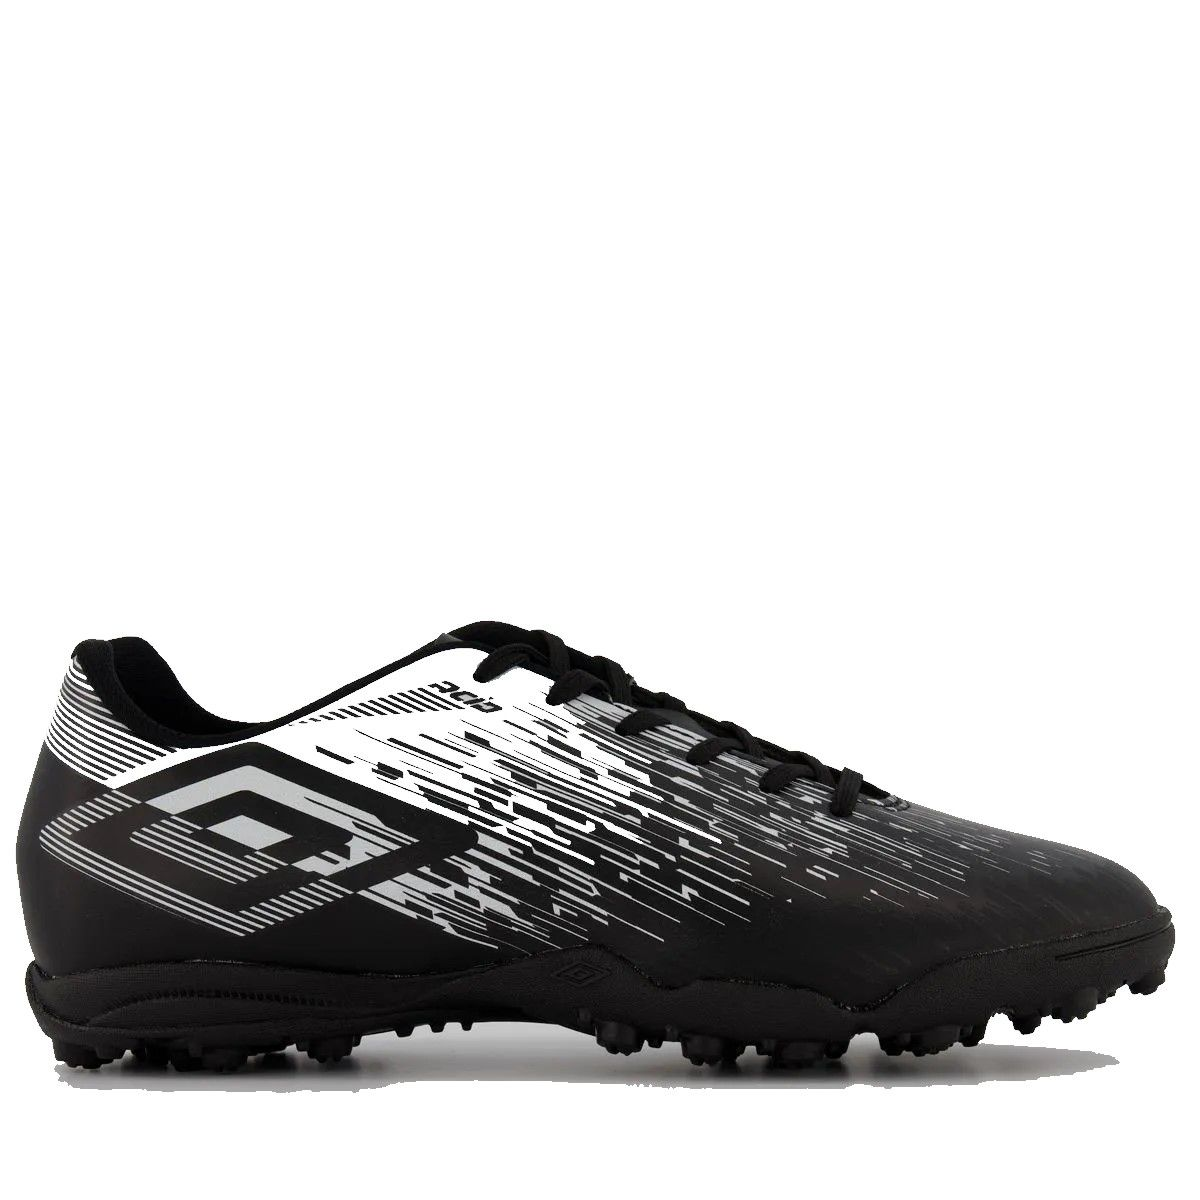 Chuteira Society Umbro Acid II Adulto - Preto/Branco